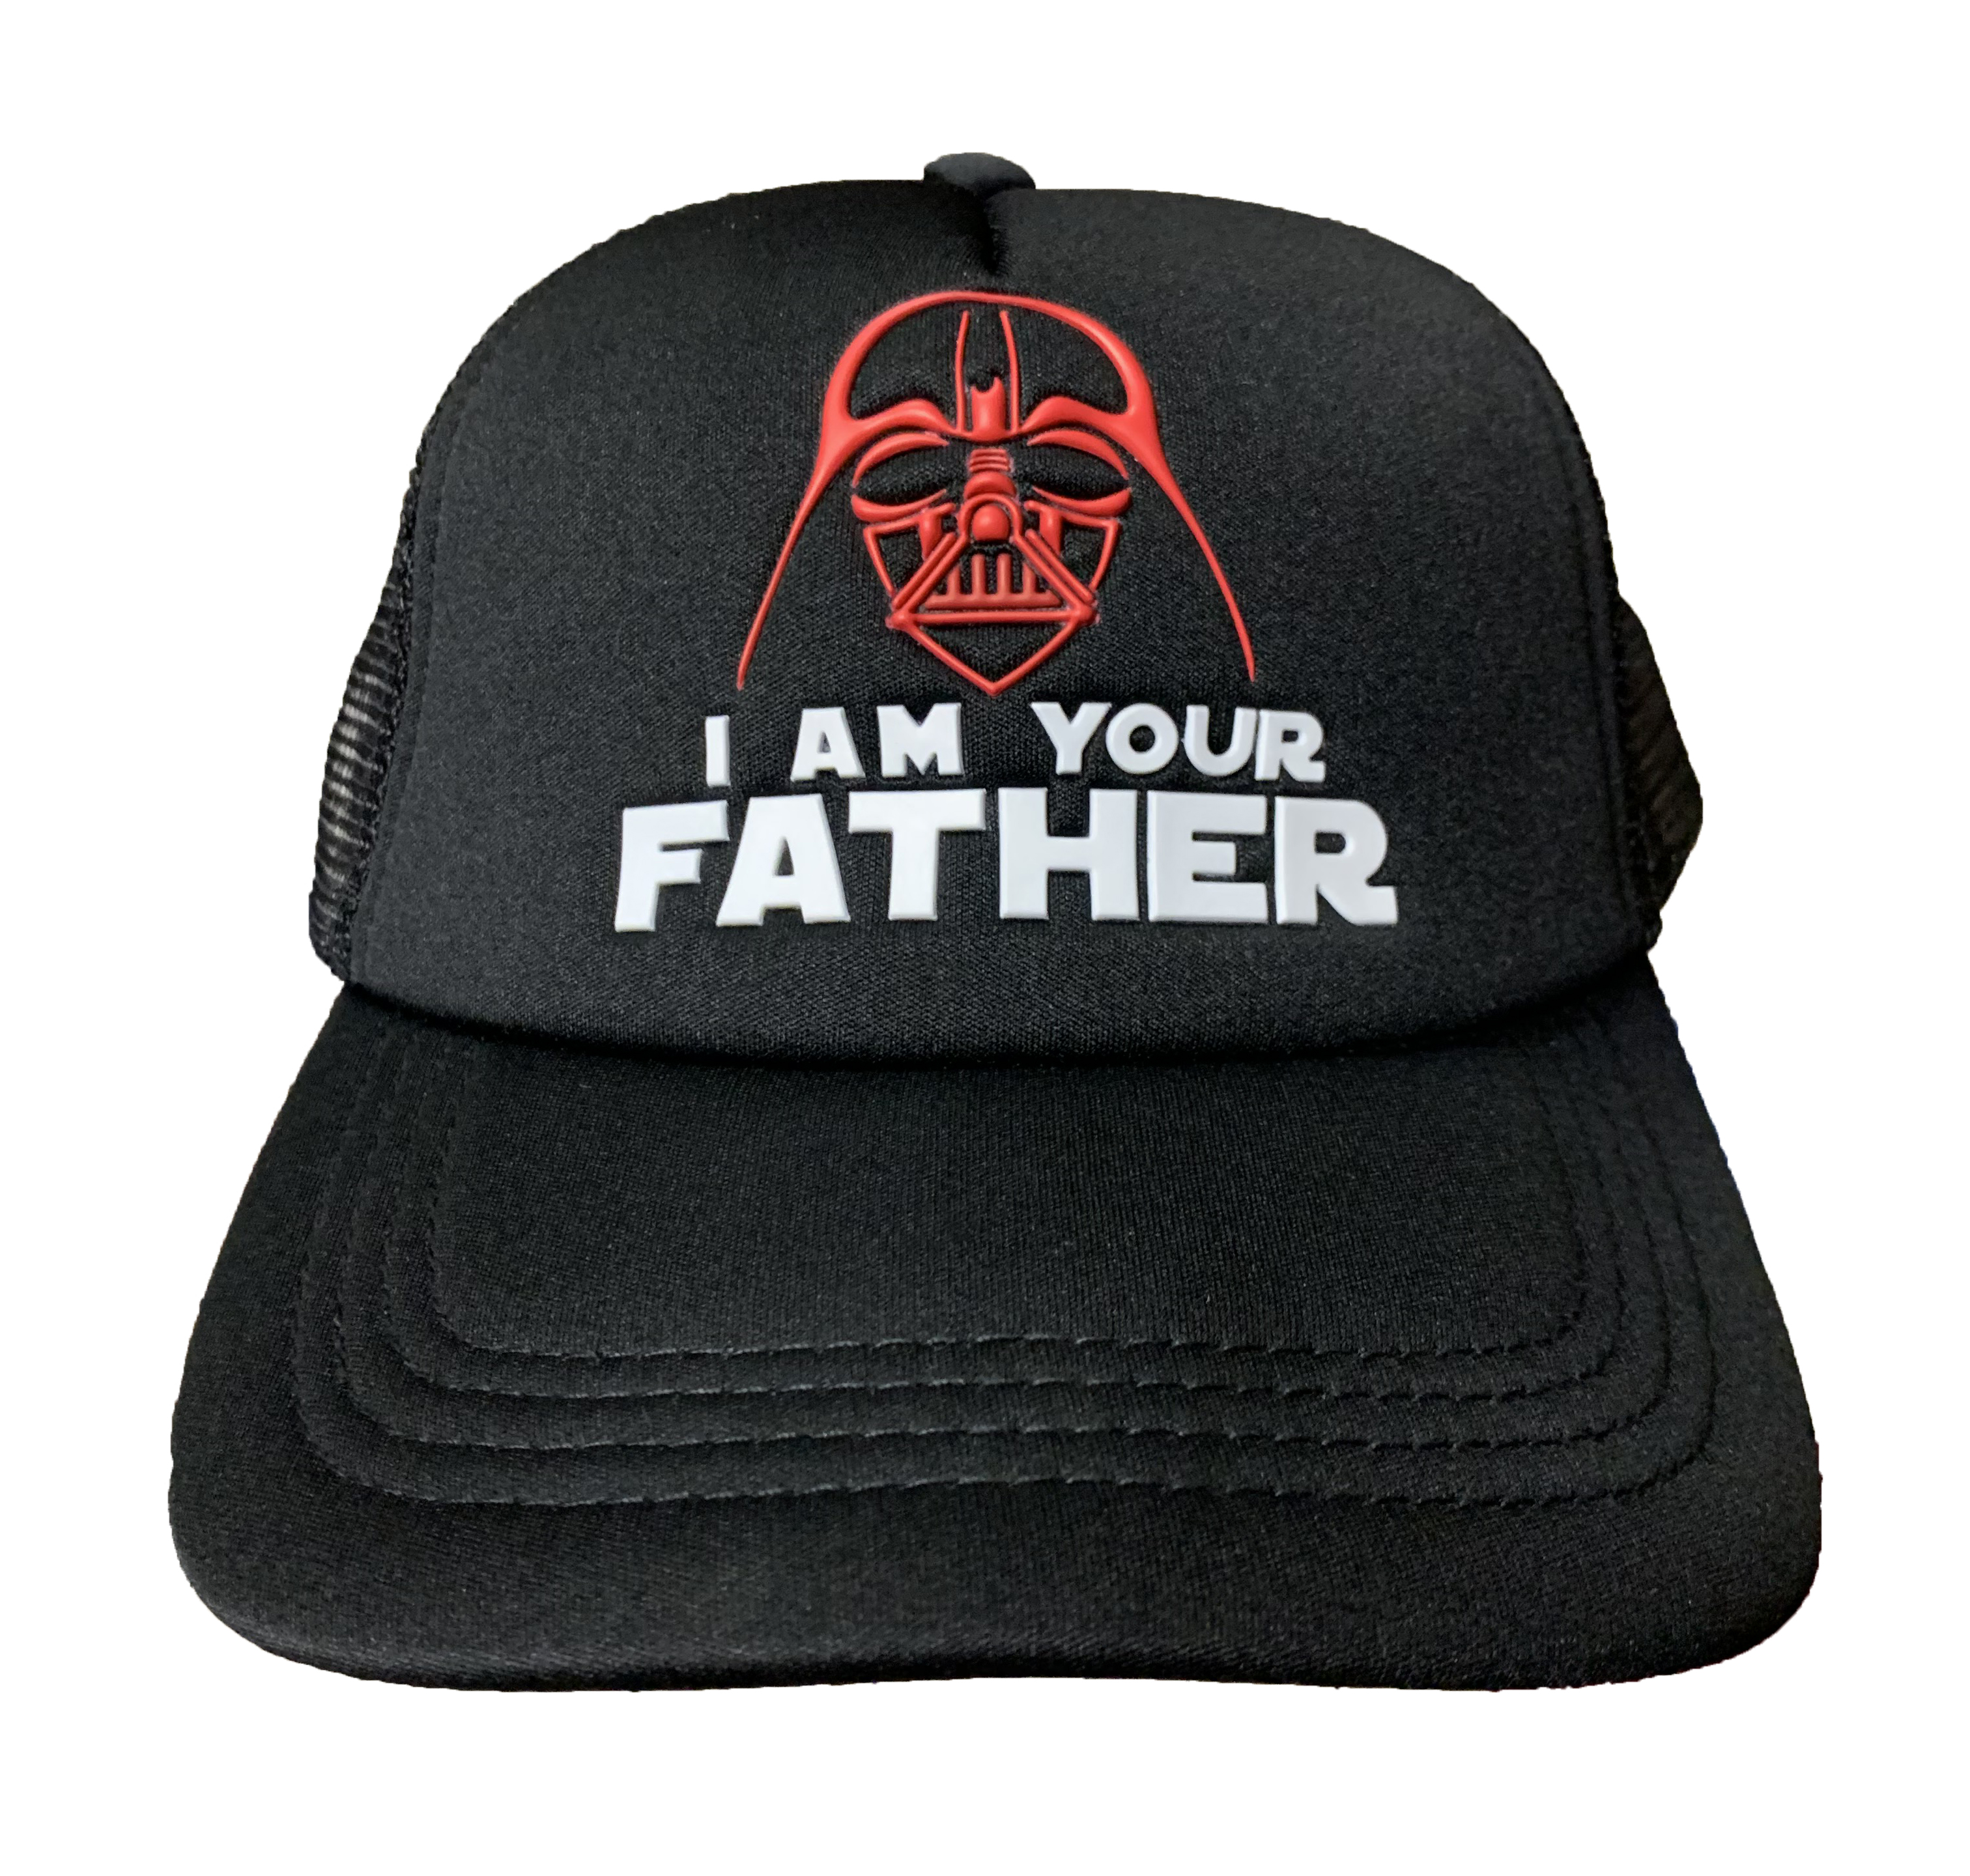 Disney Hat - Baseball Cap - I am Your Father - Darth Vader